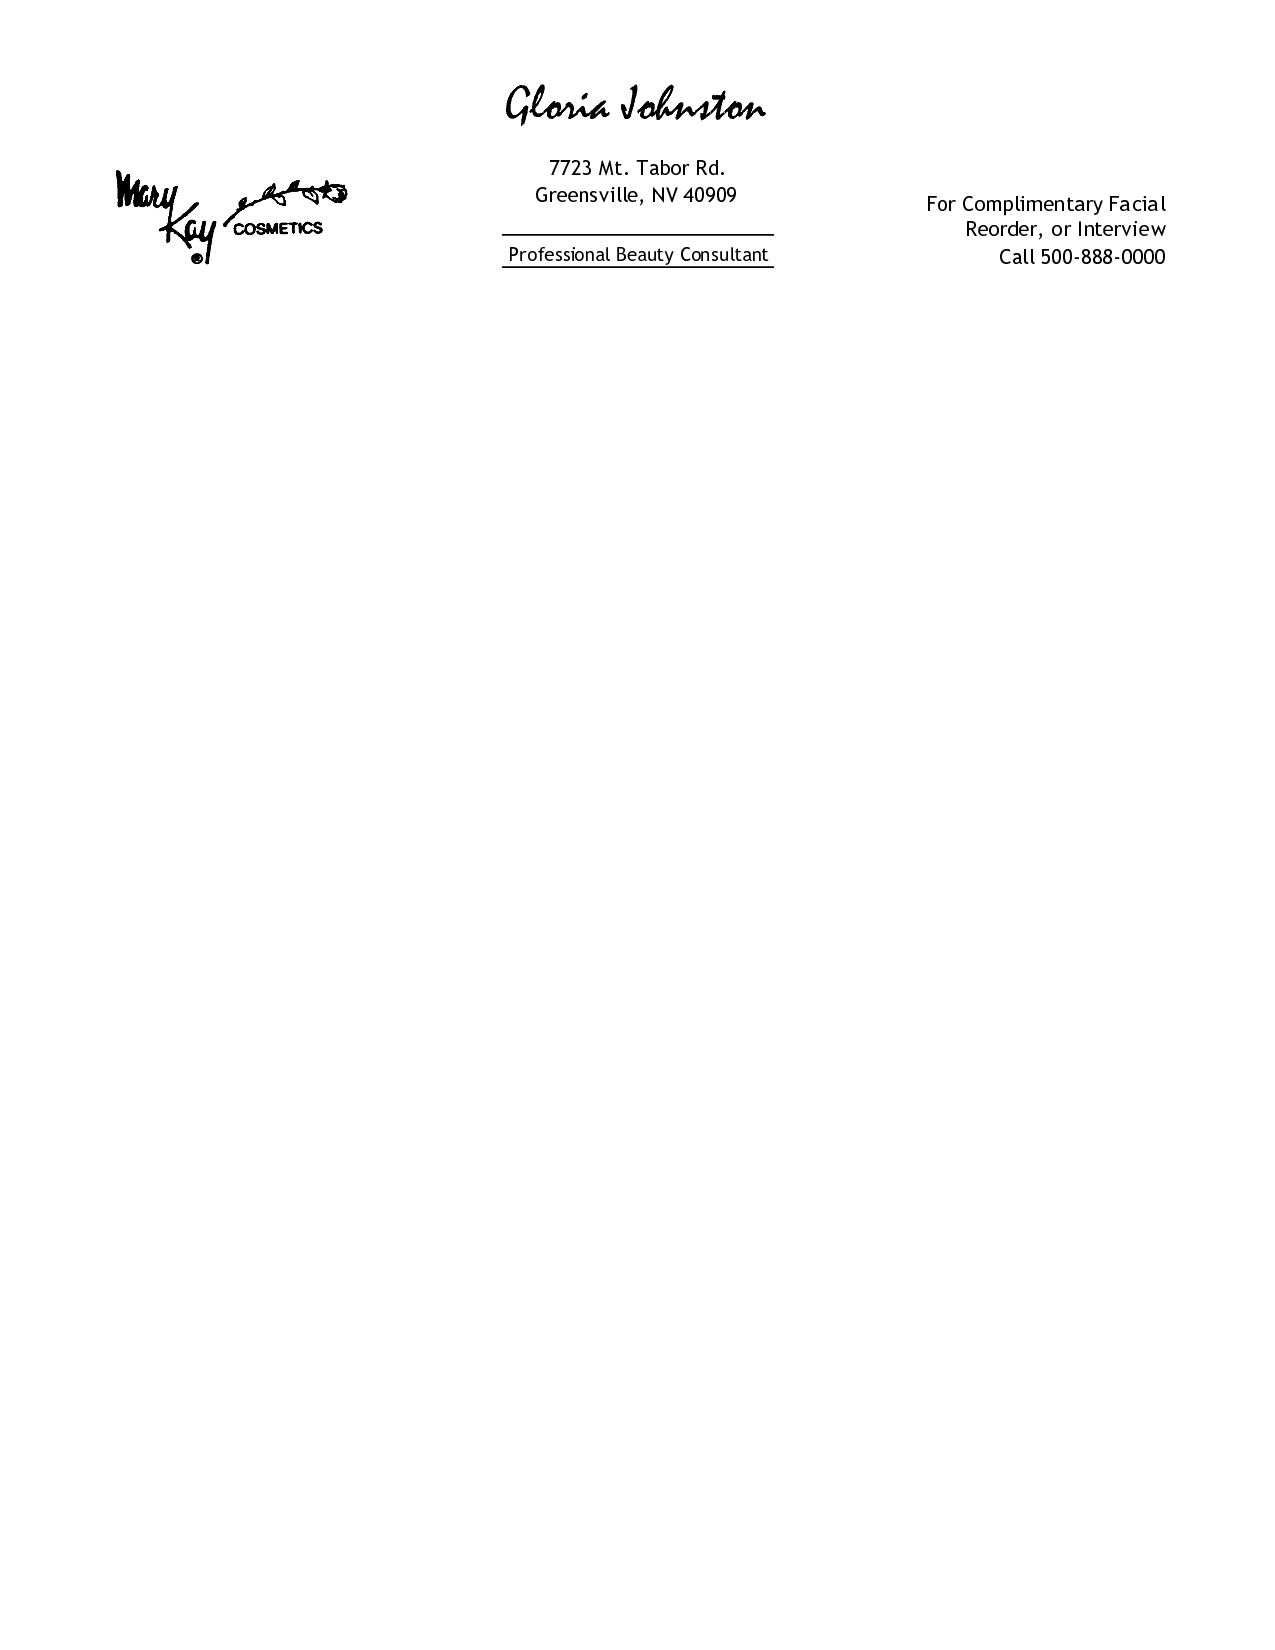 free printable personal letterhead templates – Free Business Letterhead Templates for Word